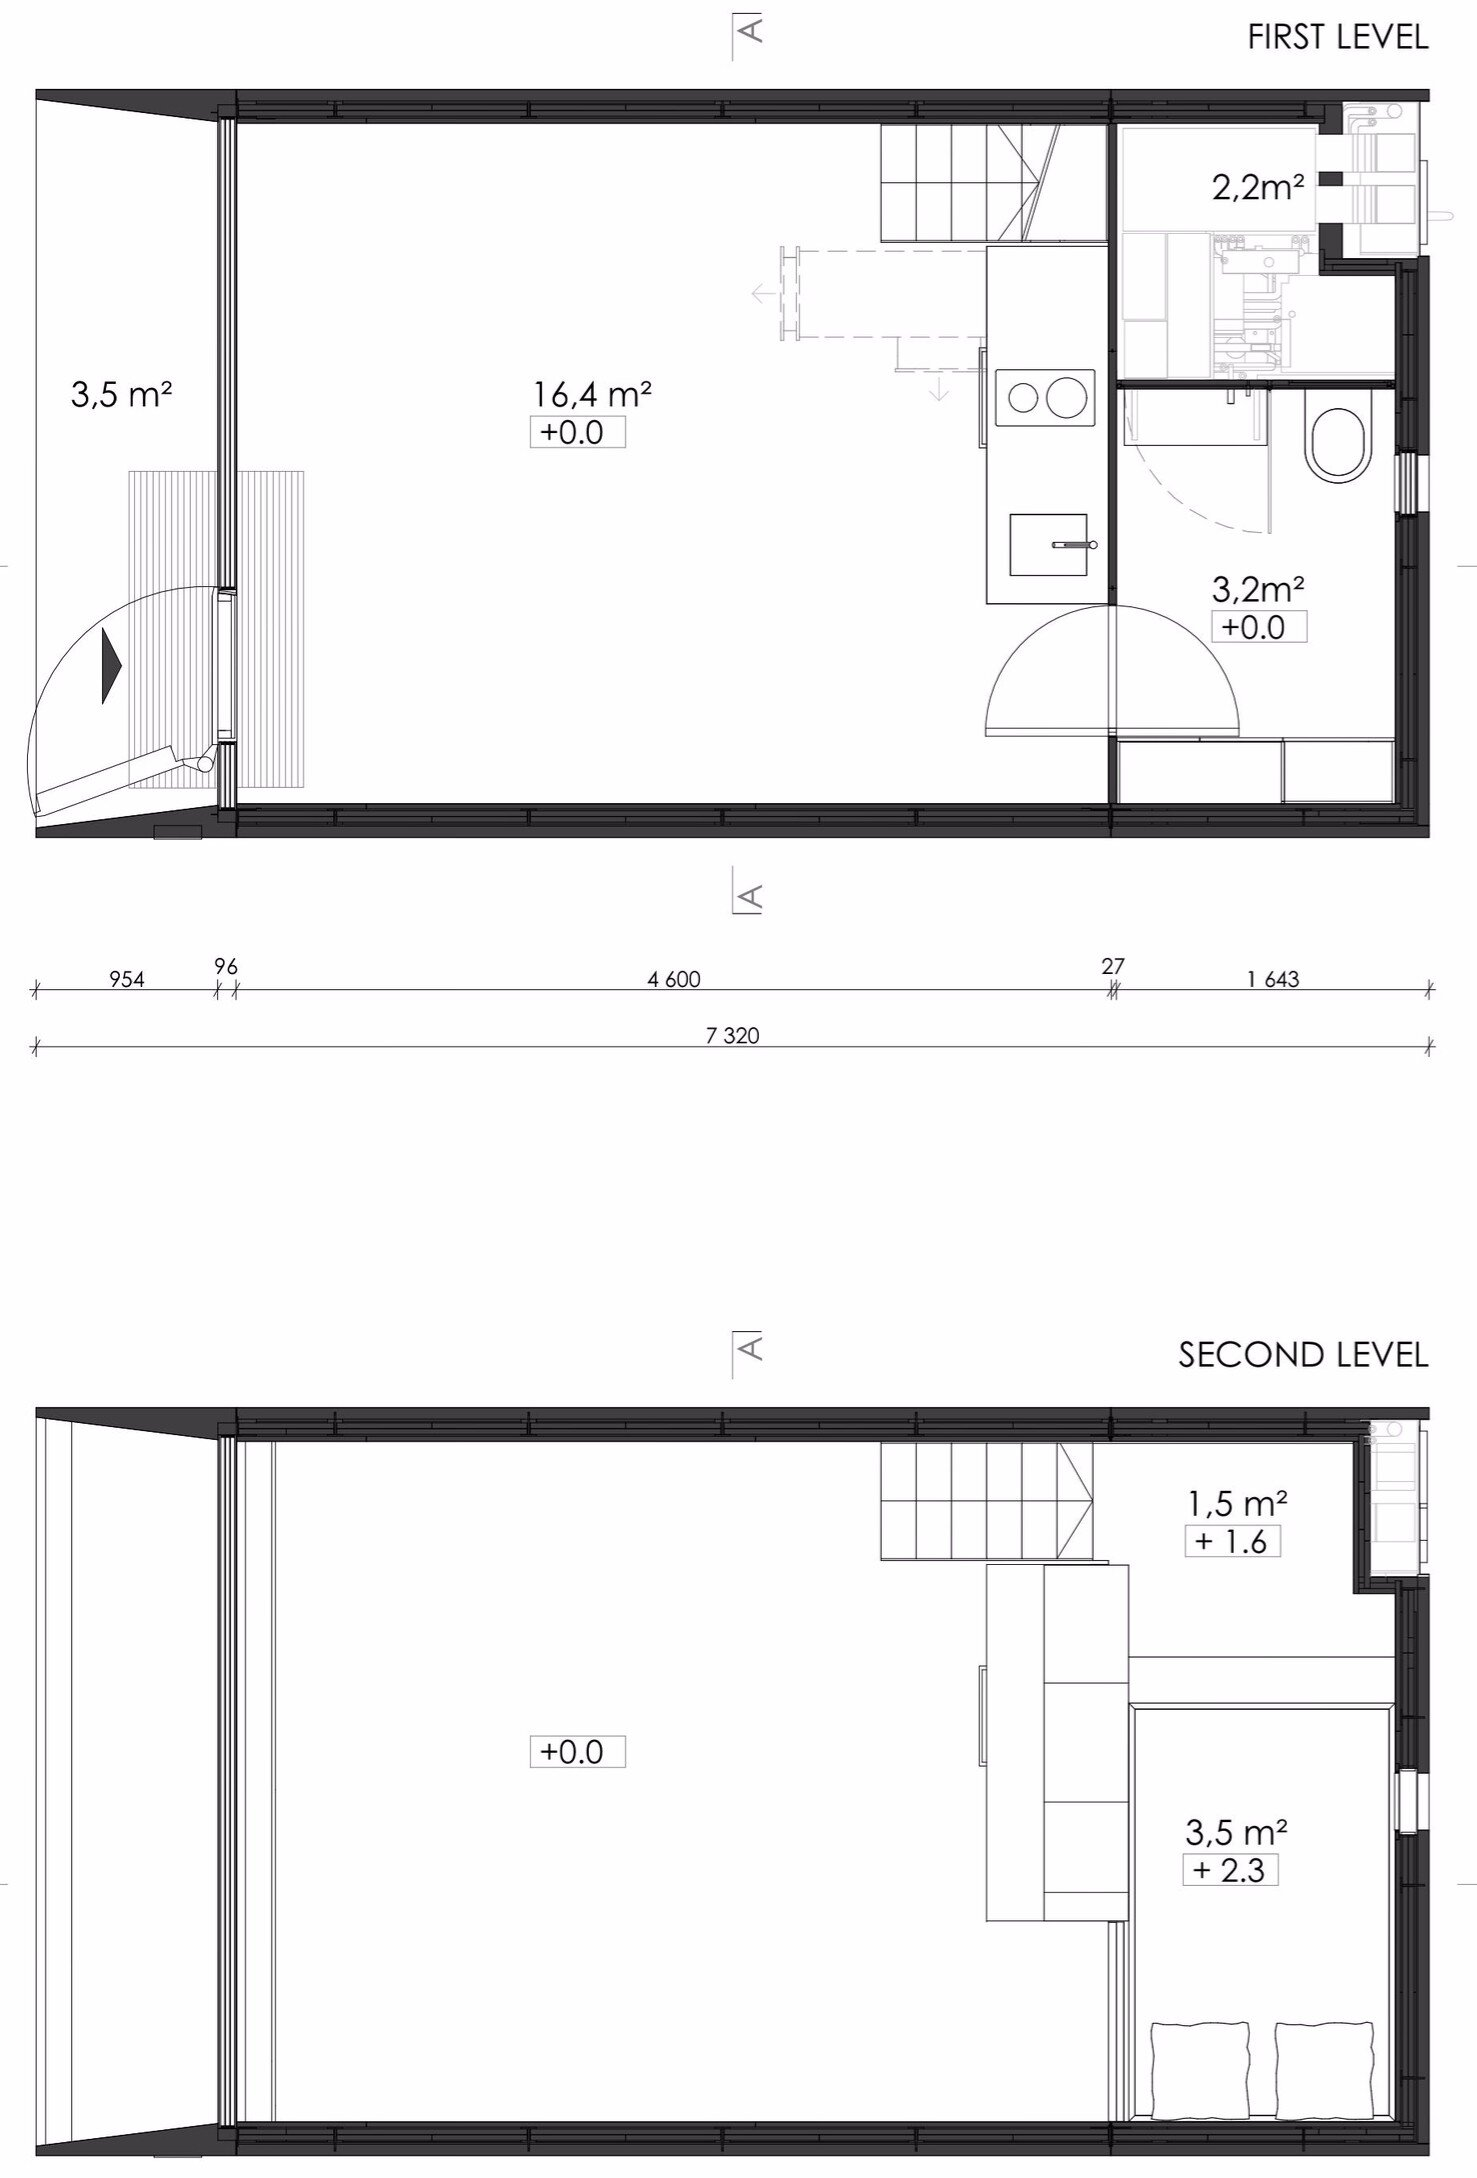 koda kodasema estonia floor plans humble homes